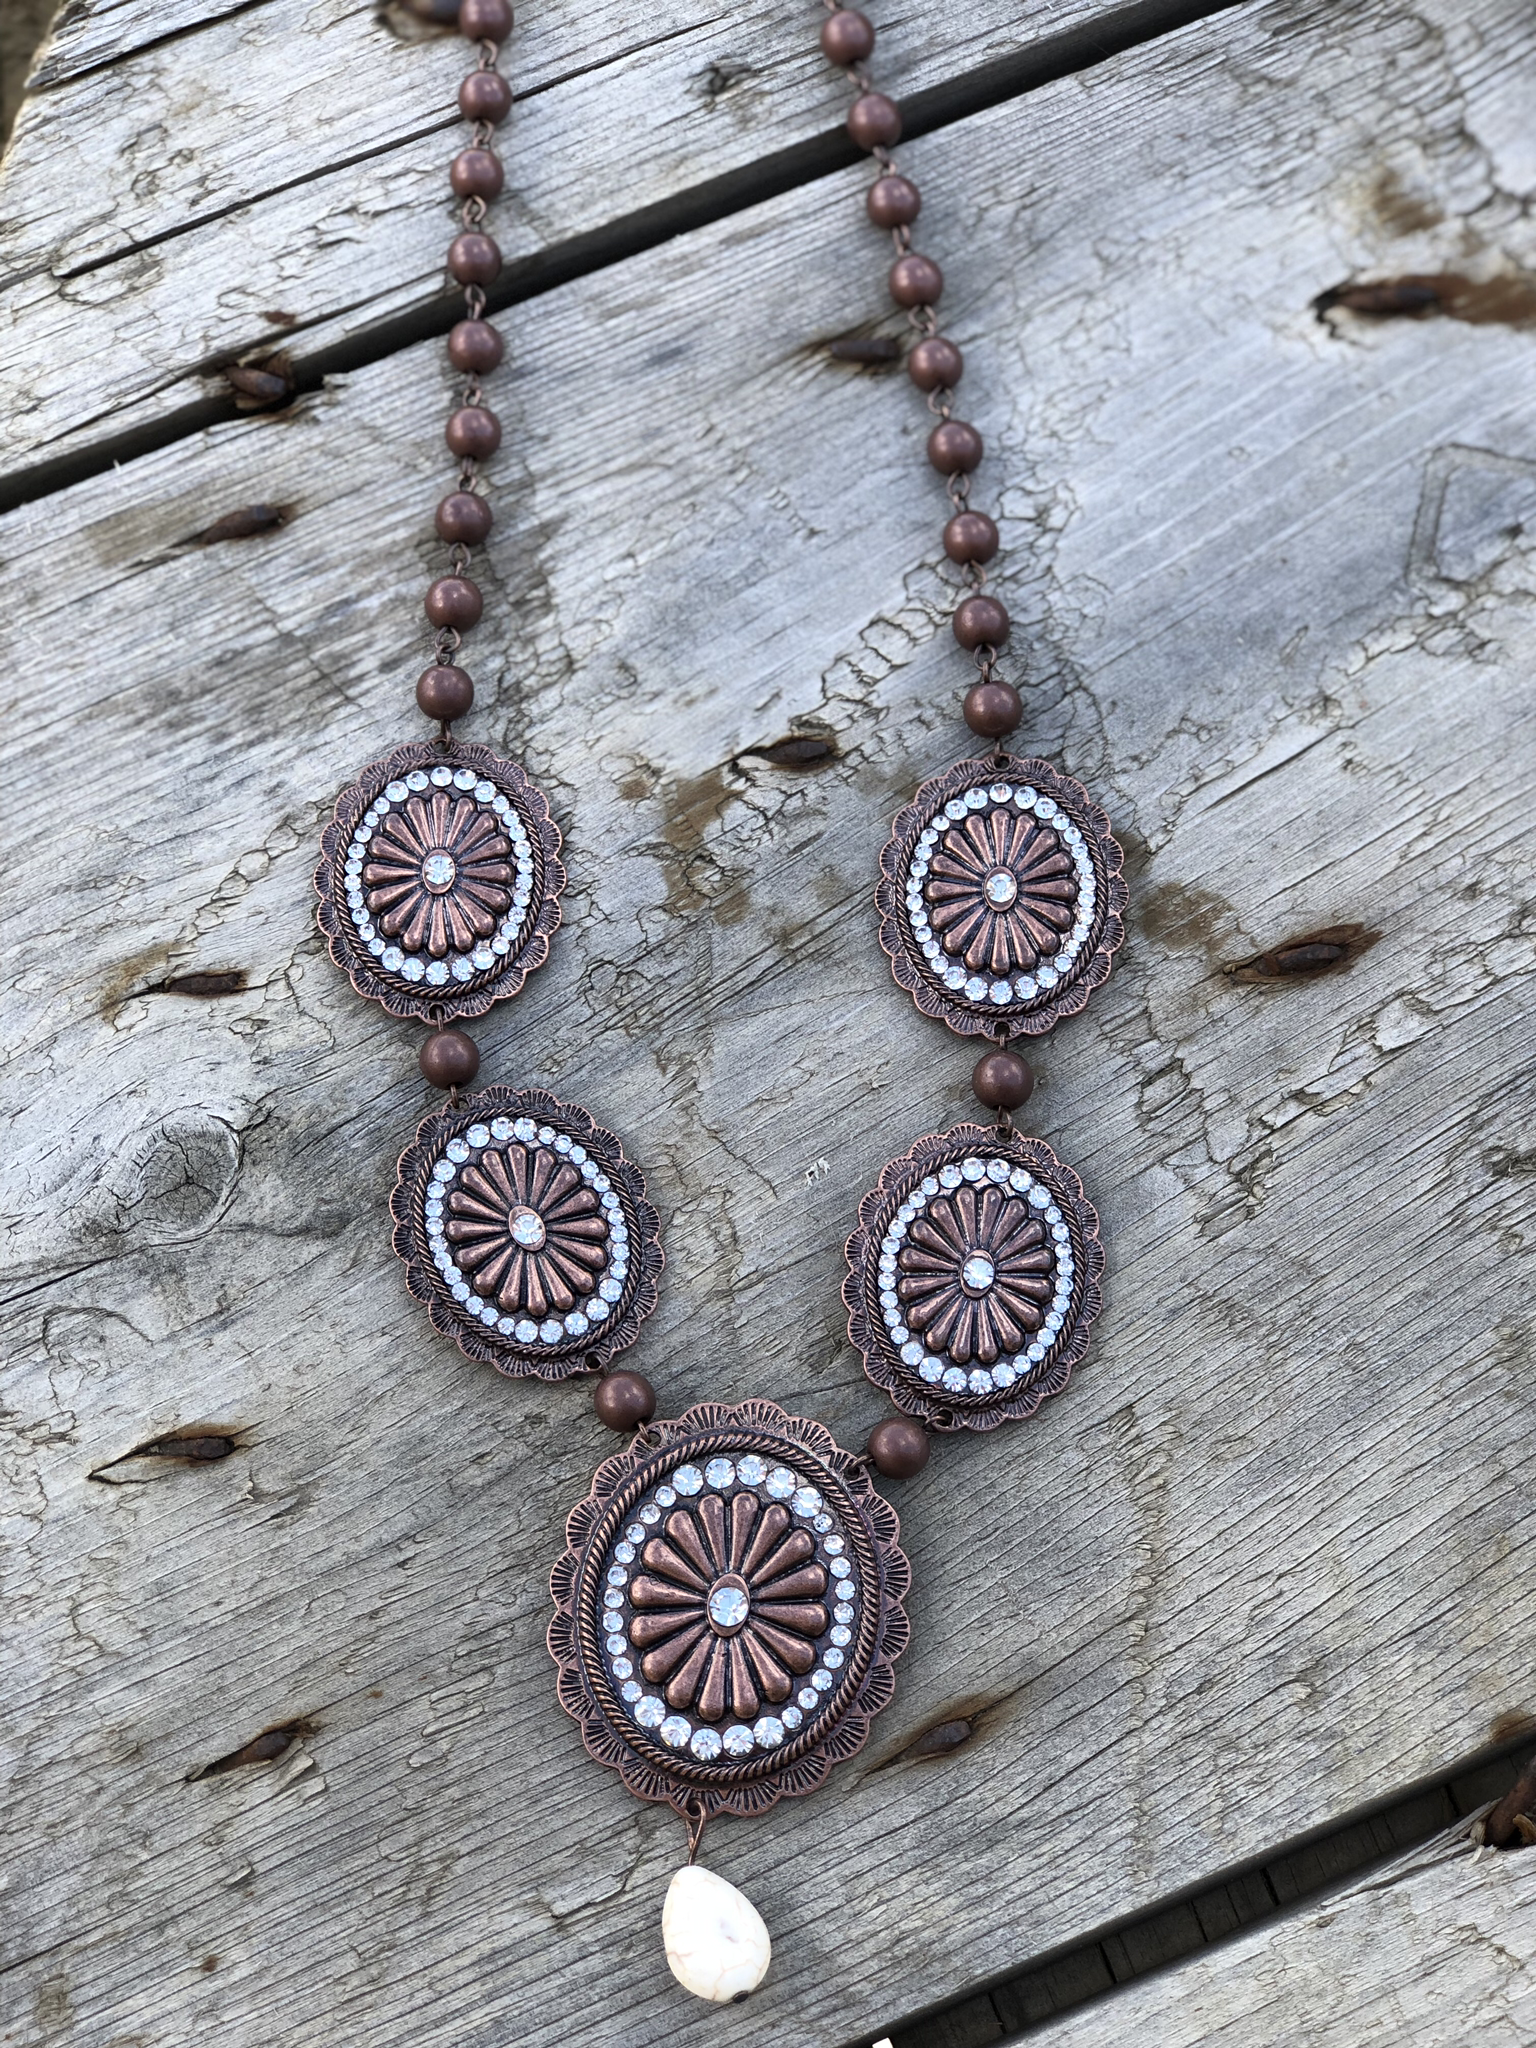 The Concho Statement Necklace and Earring Set